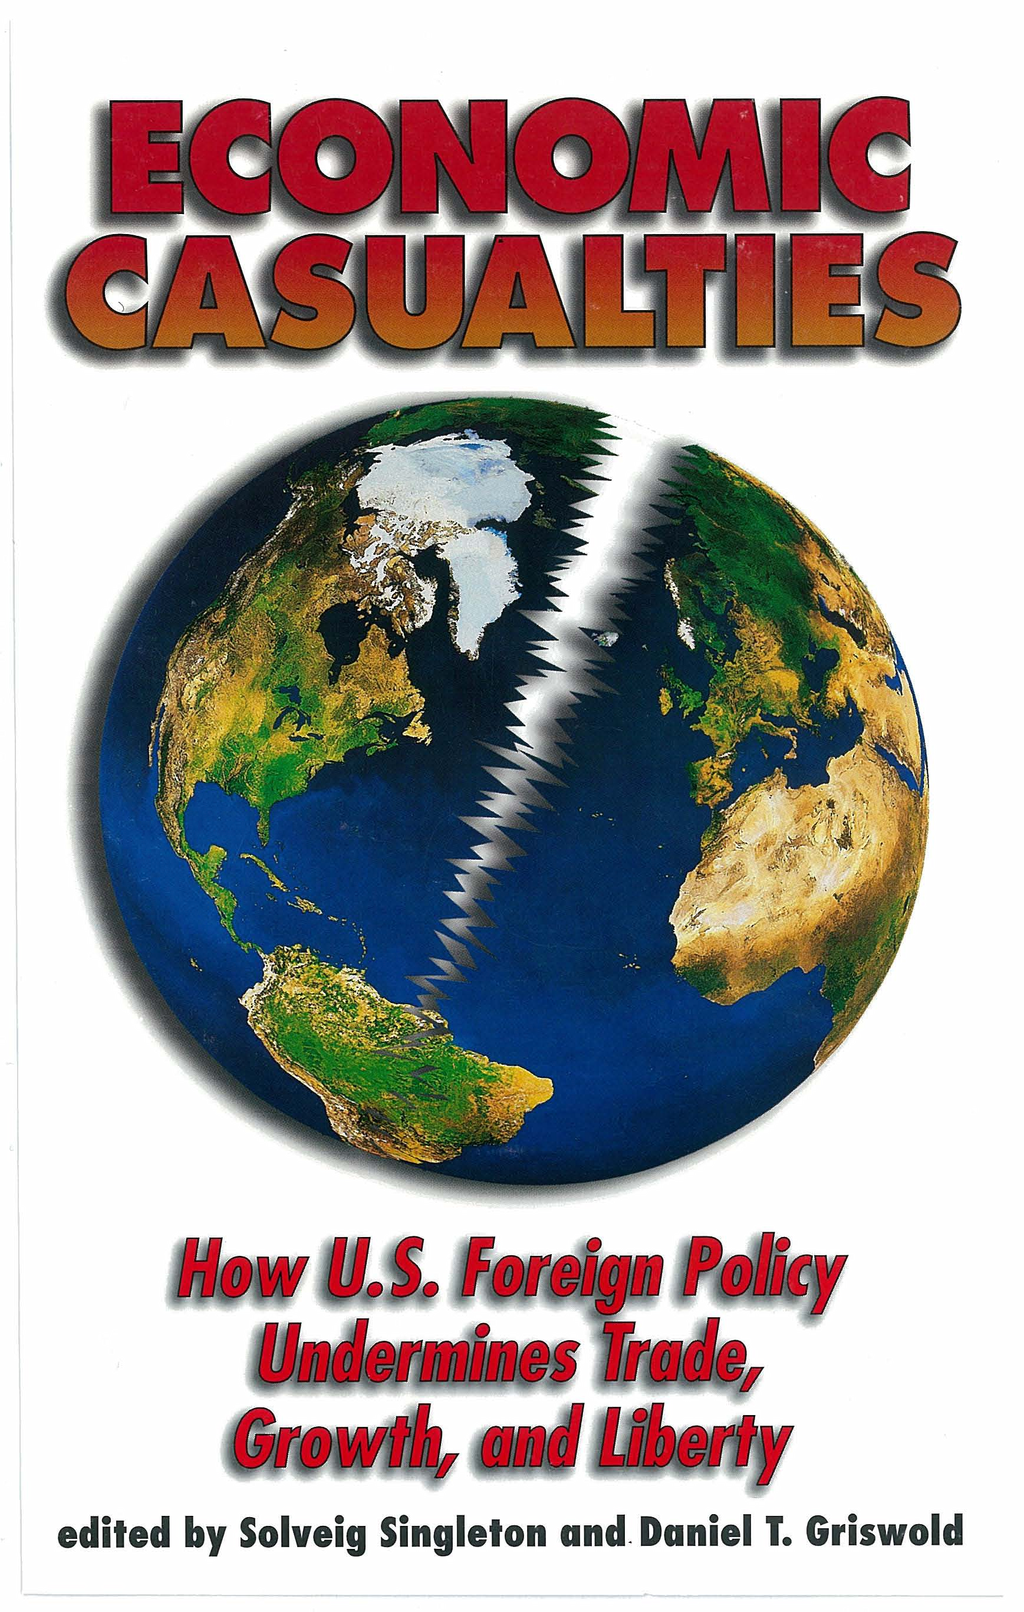 Economic Casualties: How U.S. Foreign Policy Undermines Trade, Growth and Liberty